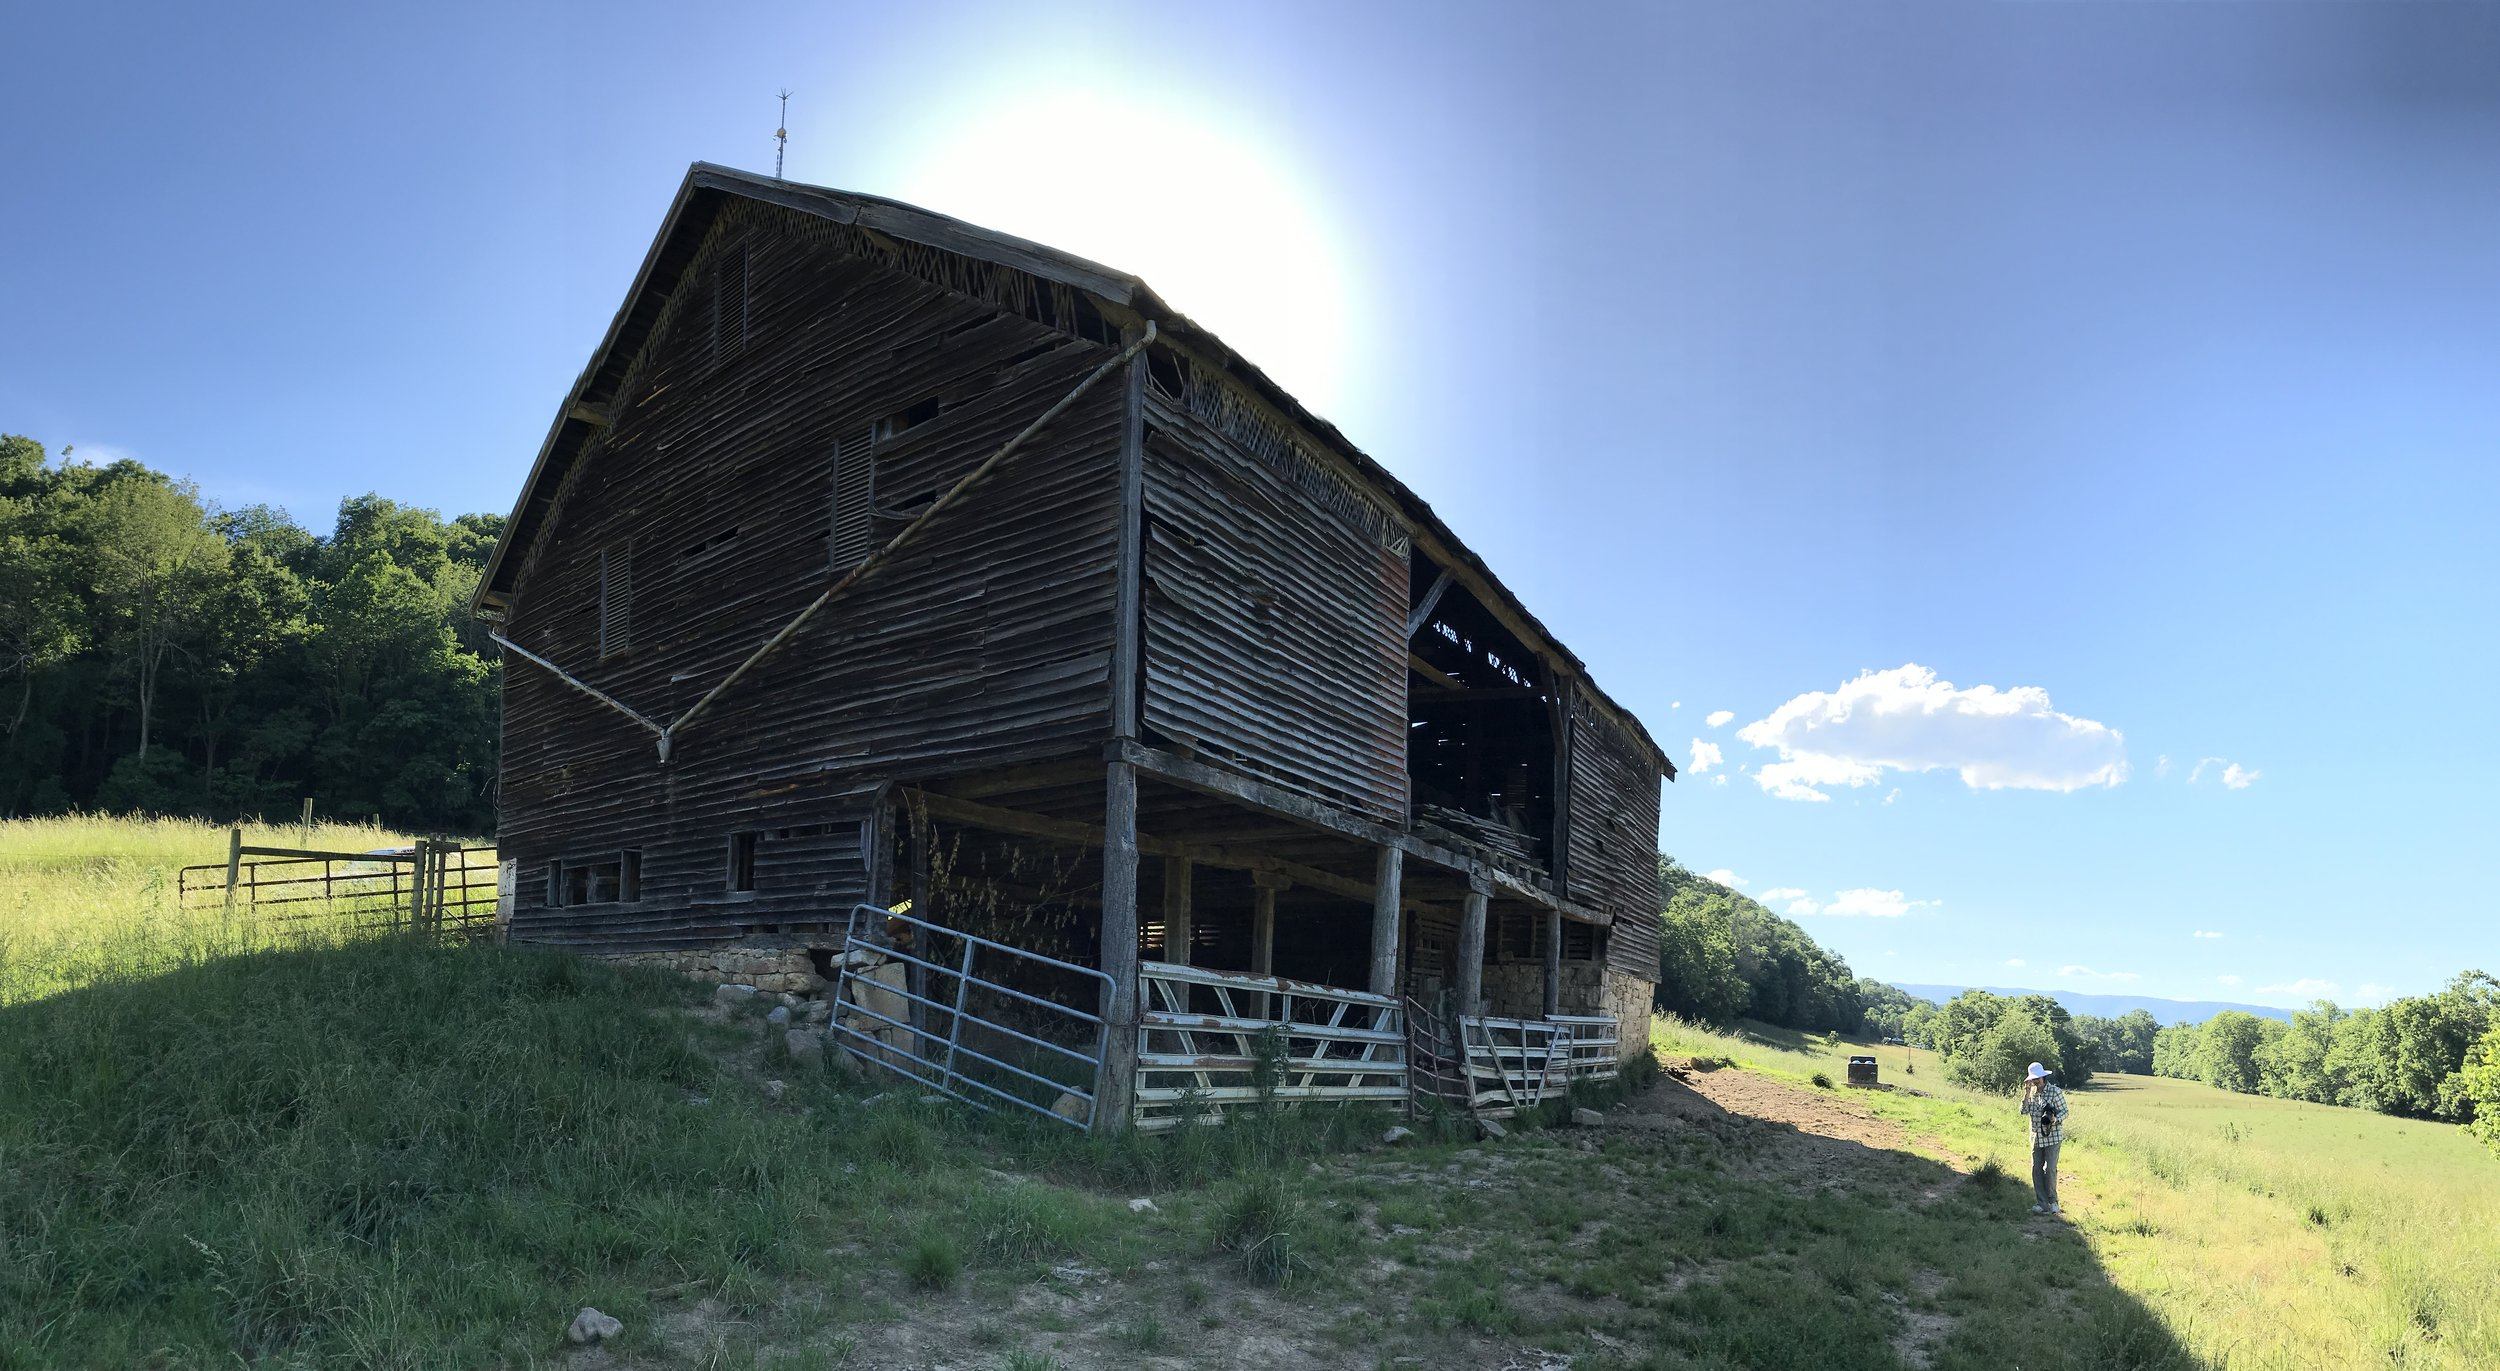 A deteriorating bank barn in Shenandoah County, VA.